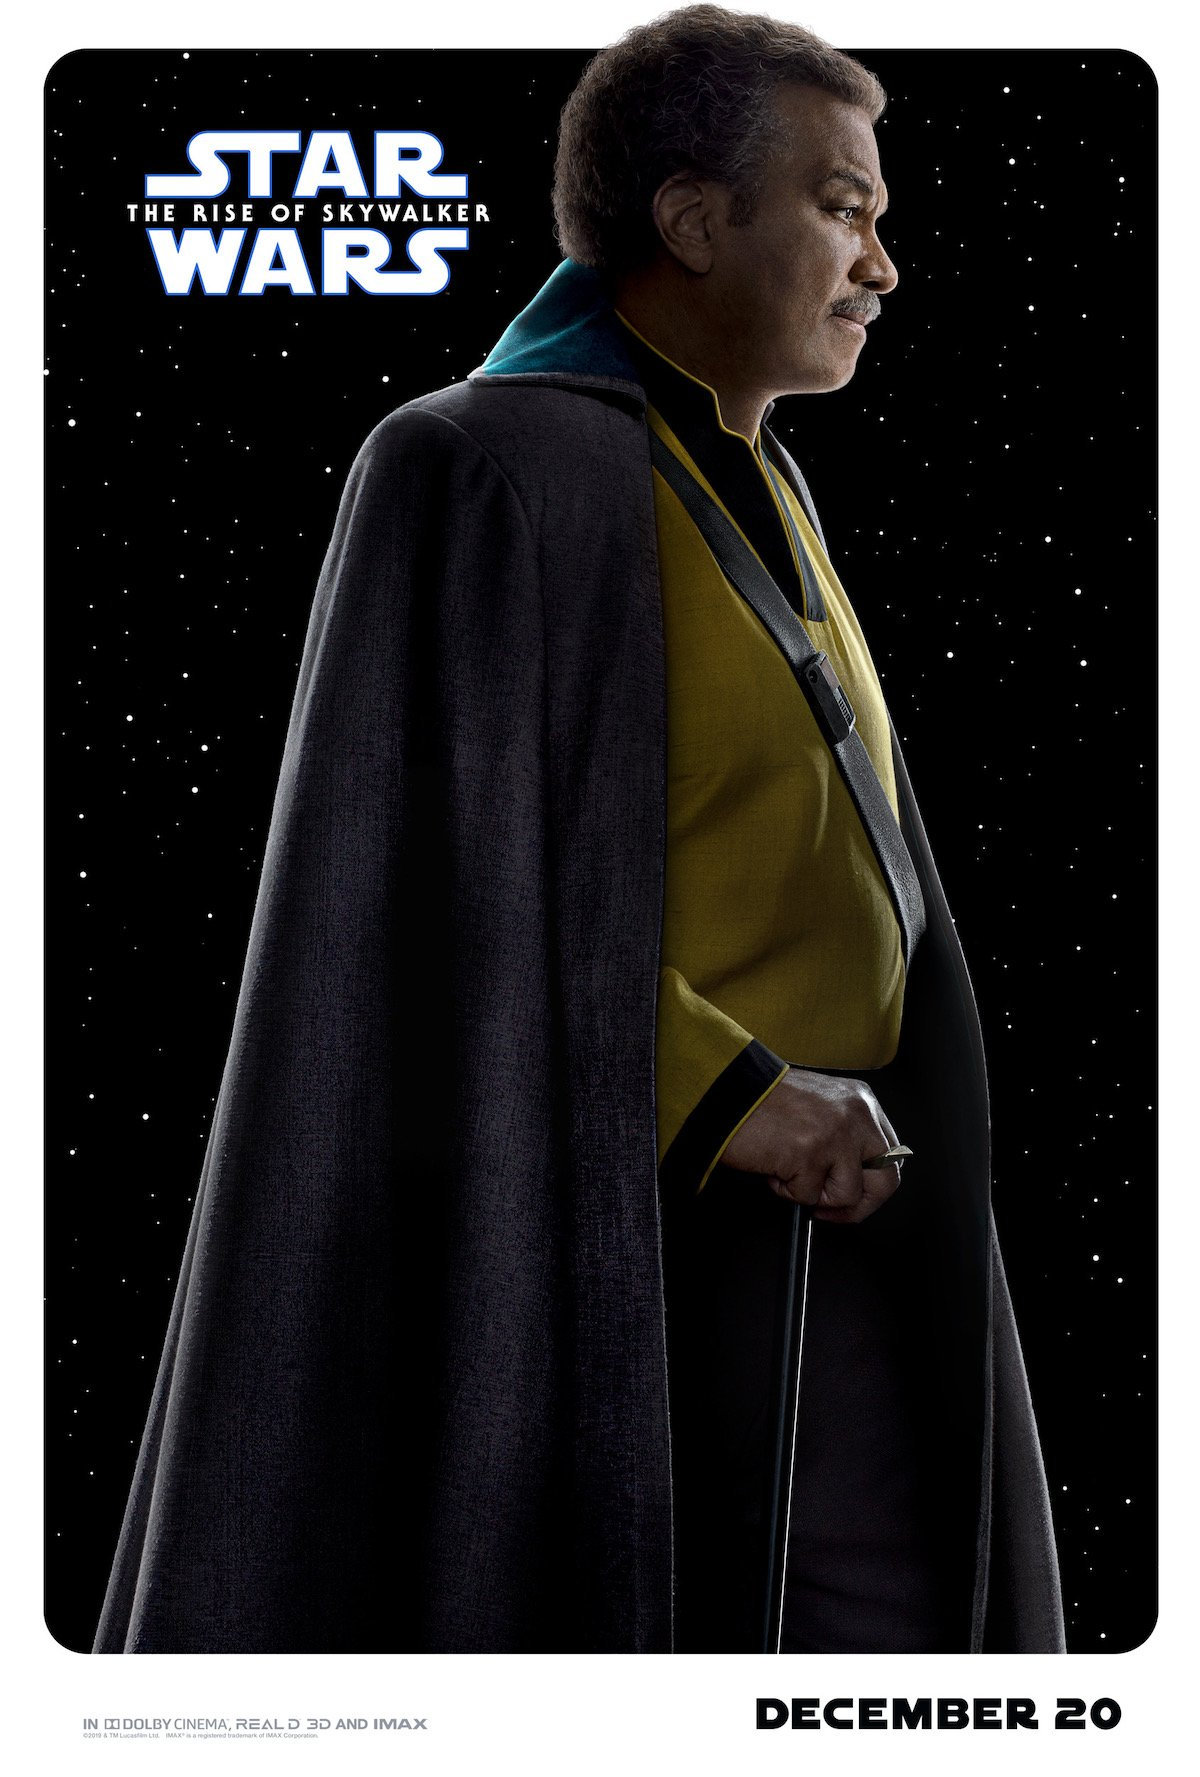 Billy Dee Williams as Lando in Star Wars: Rise of Skywalker, character poster